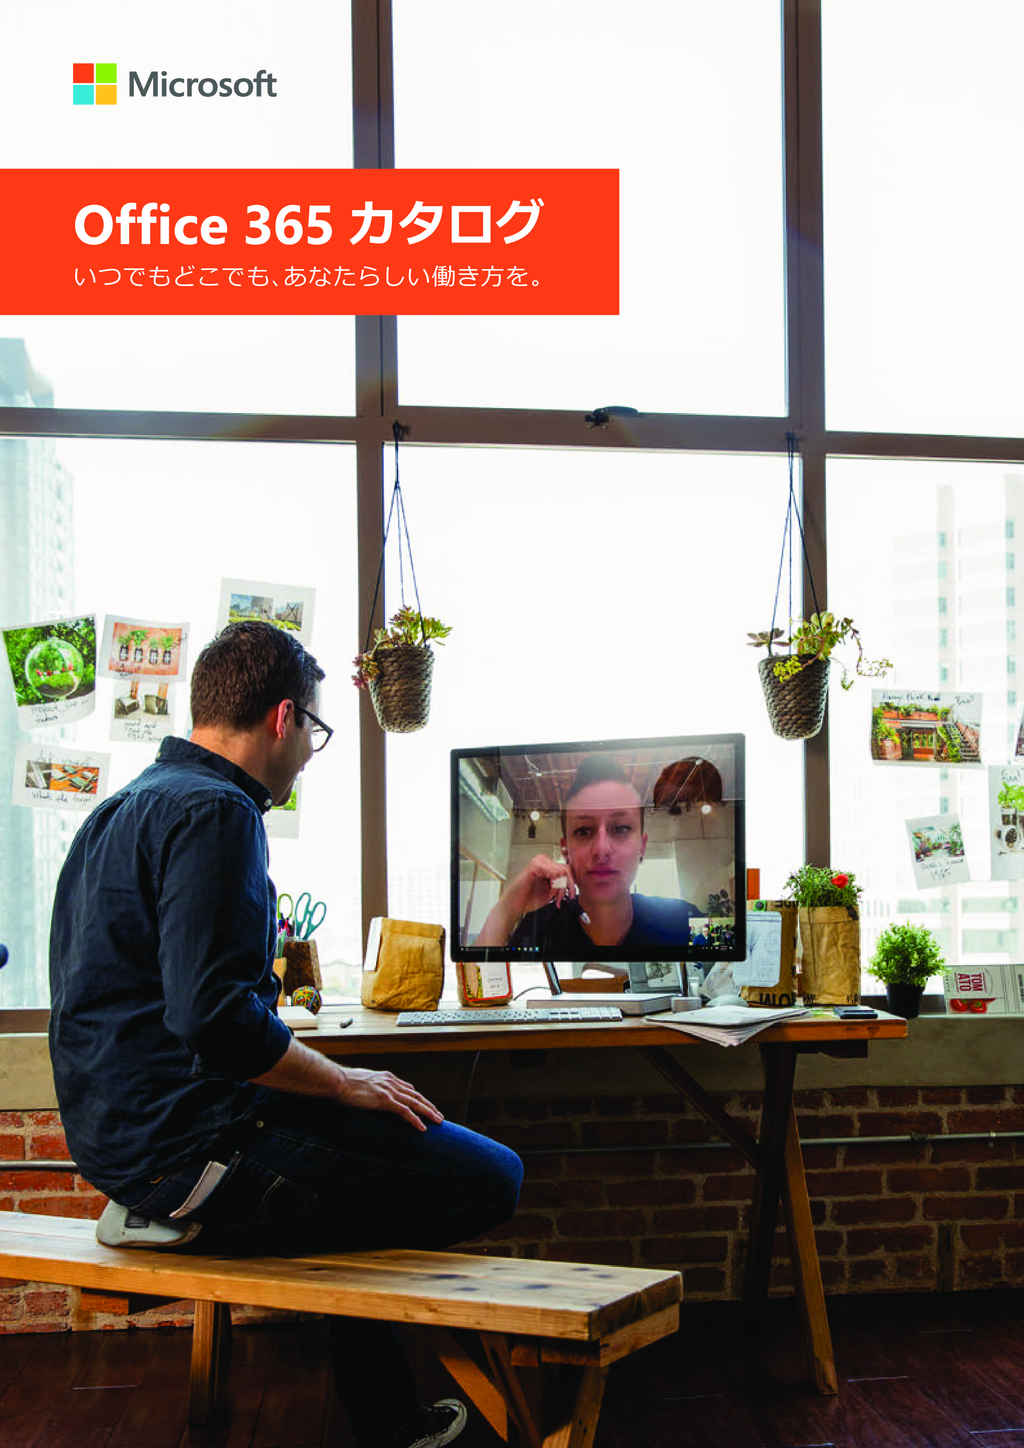 office365サービス資料-0